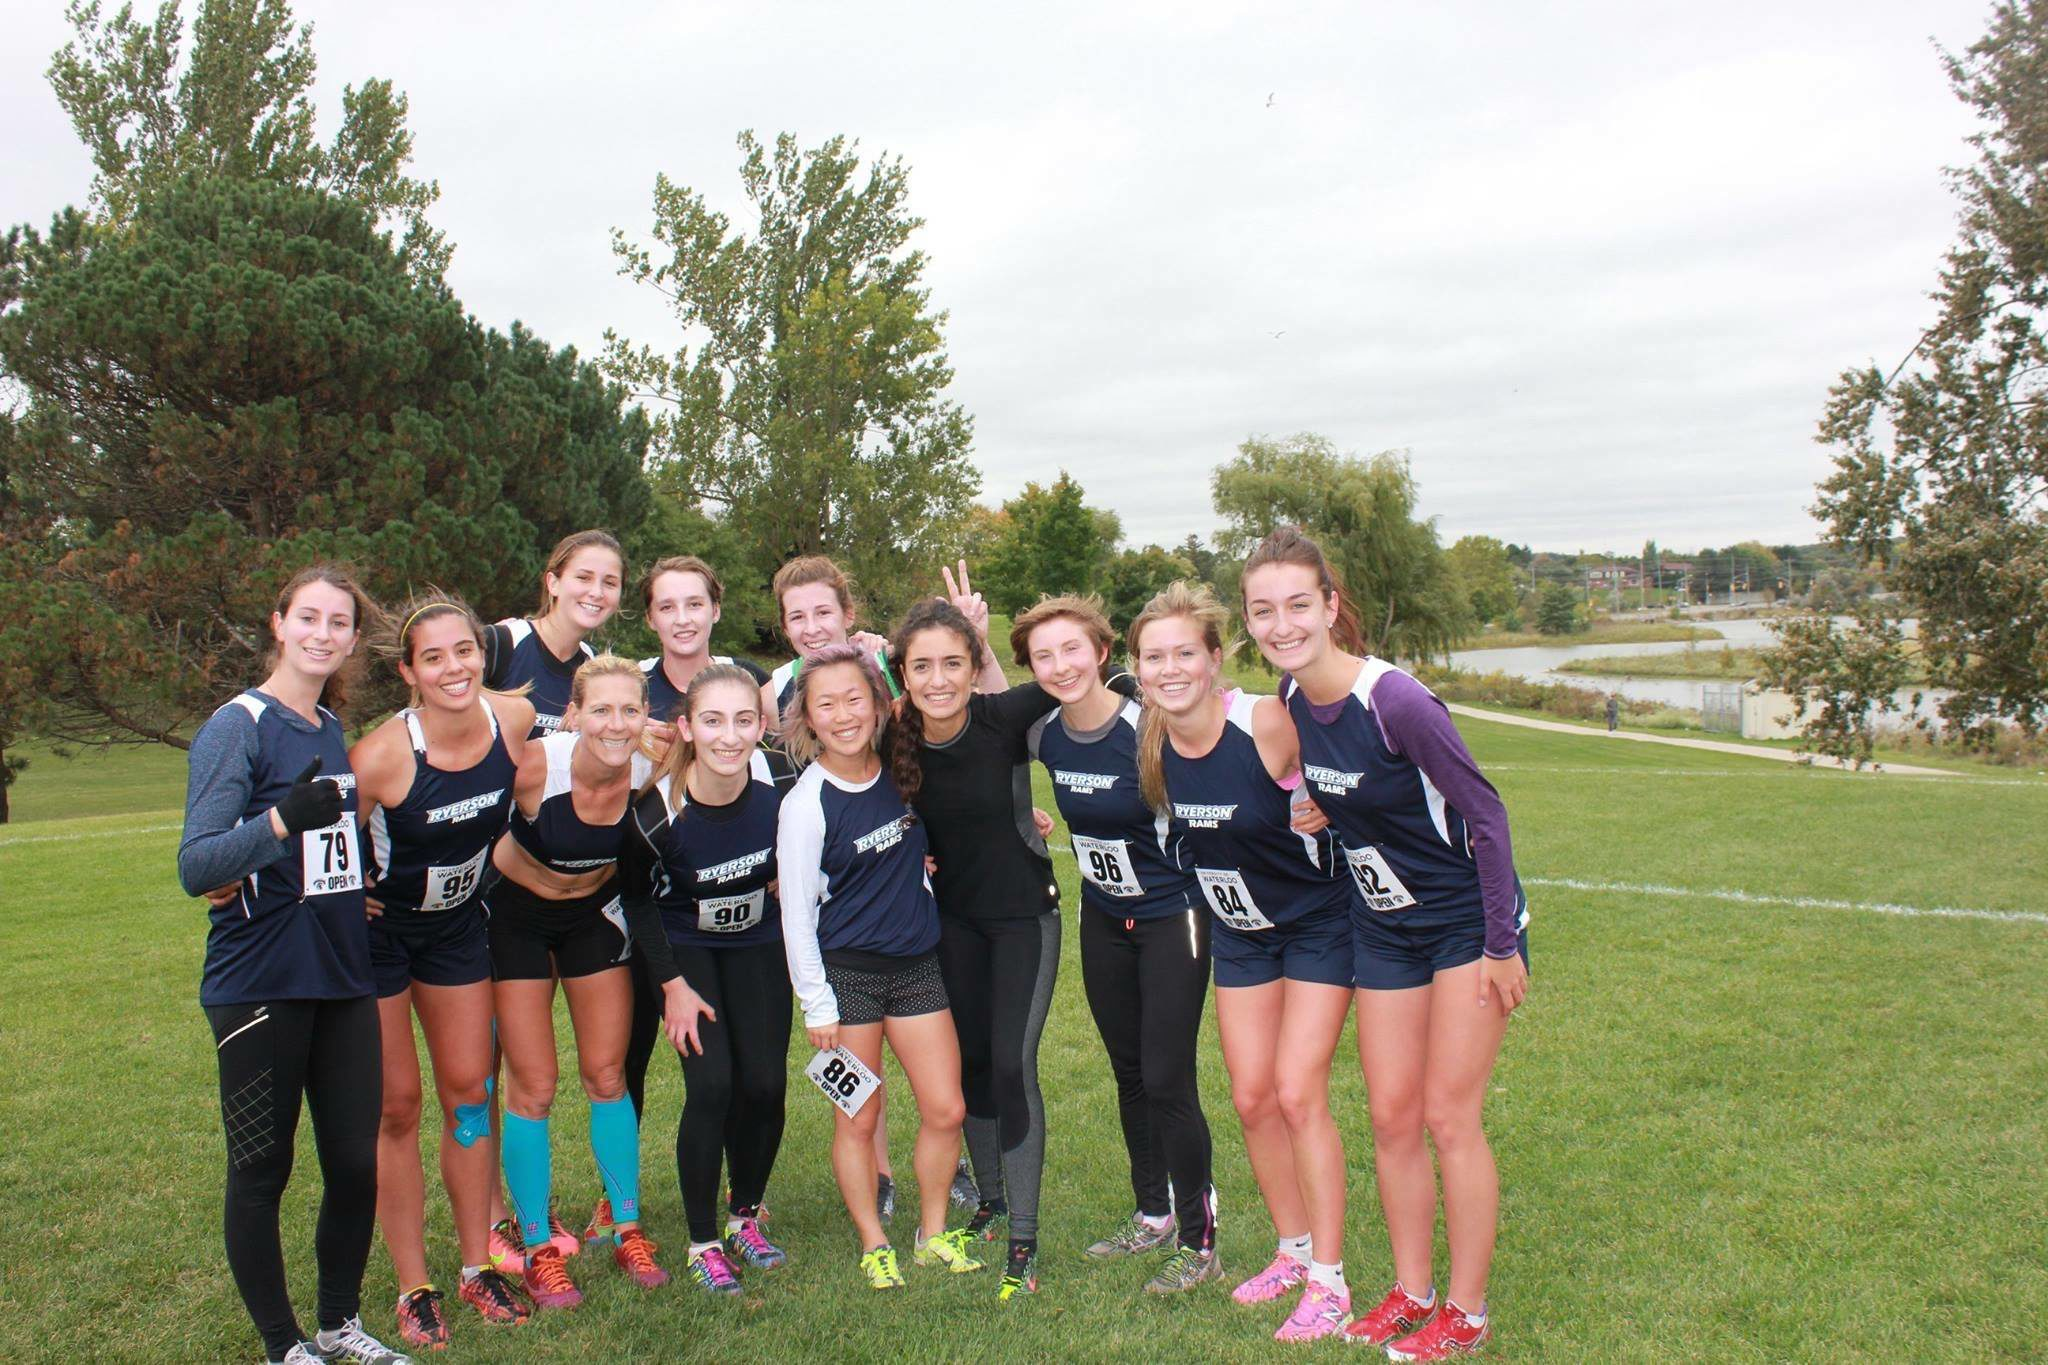 Ryerson's cross country team photo. (Courtesy Tim Uuksulainen)